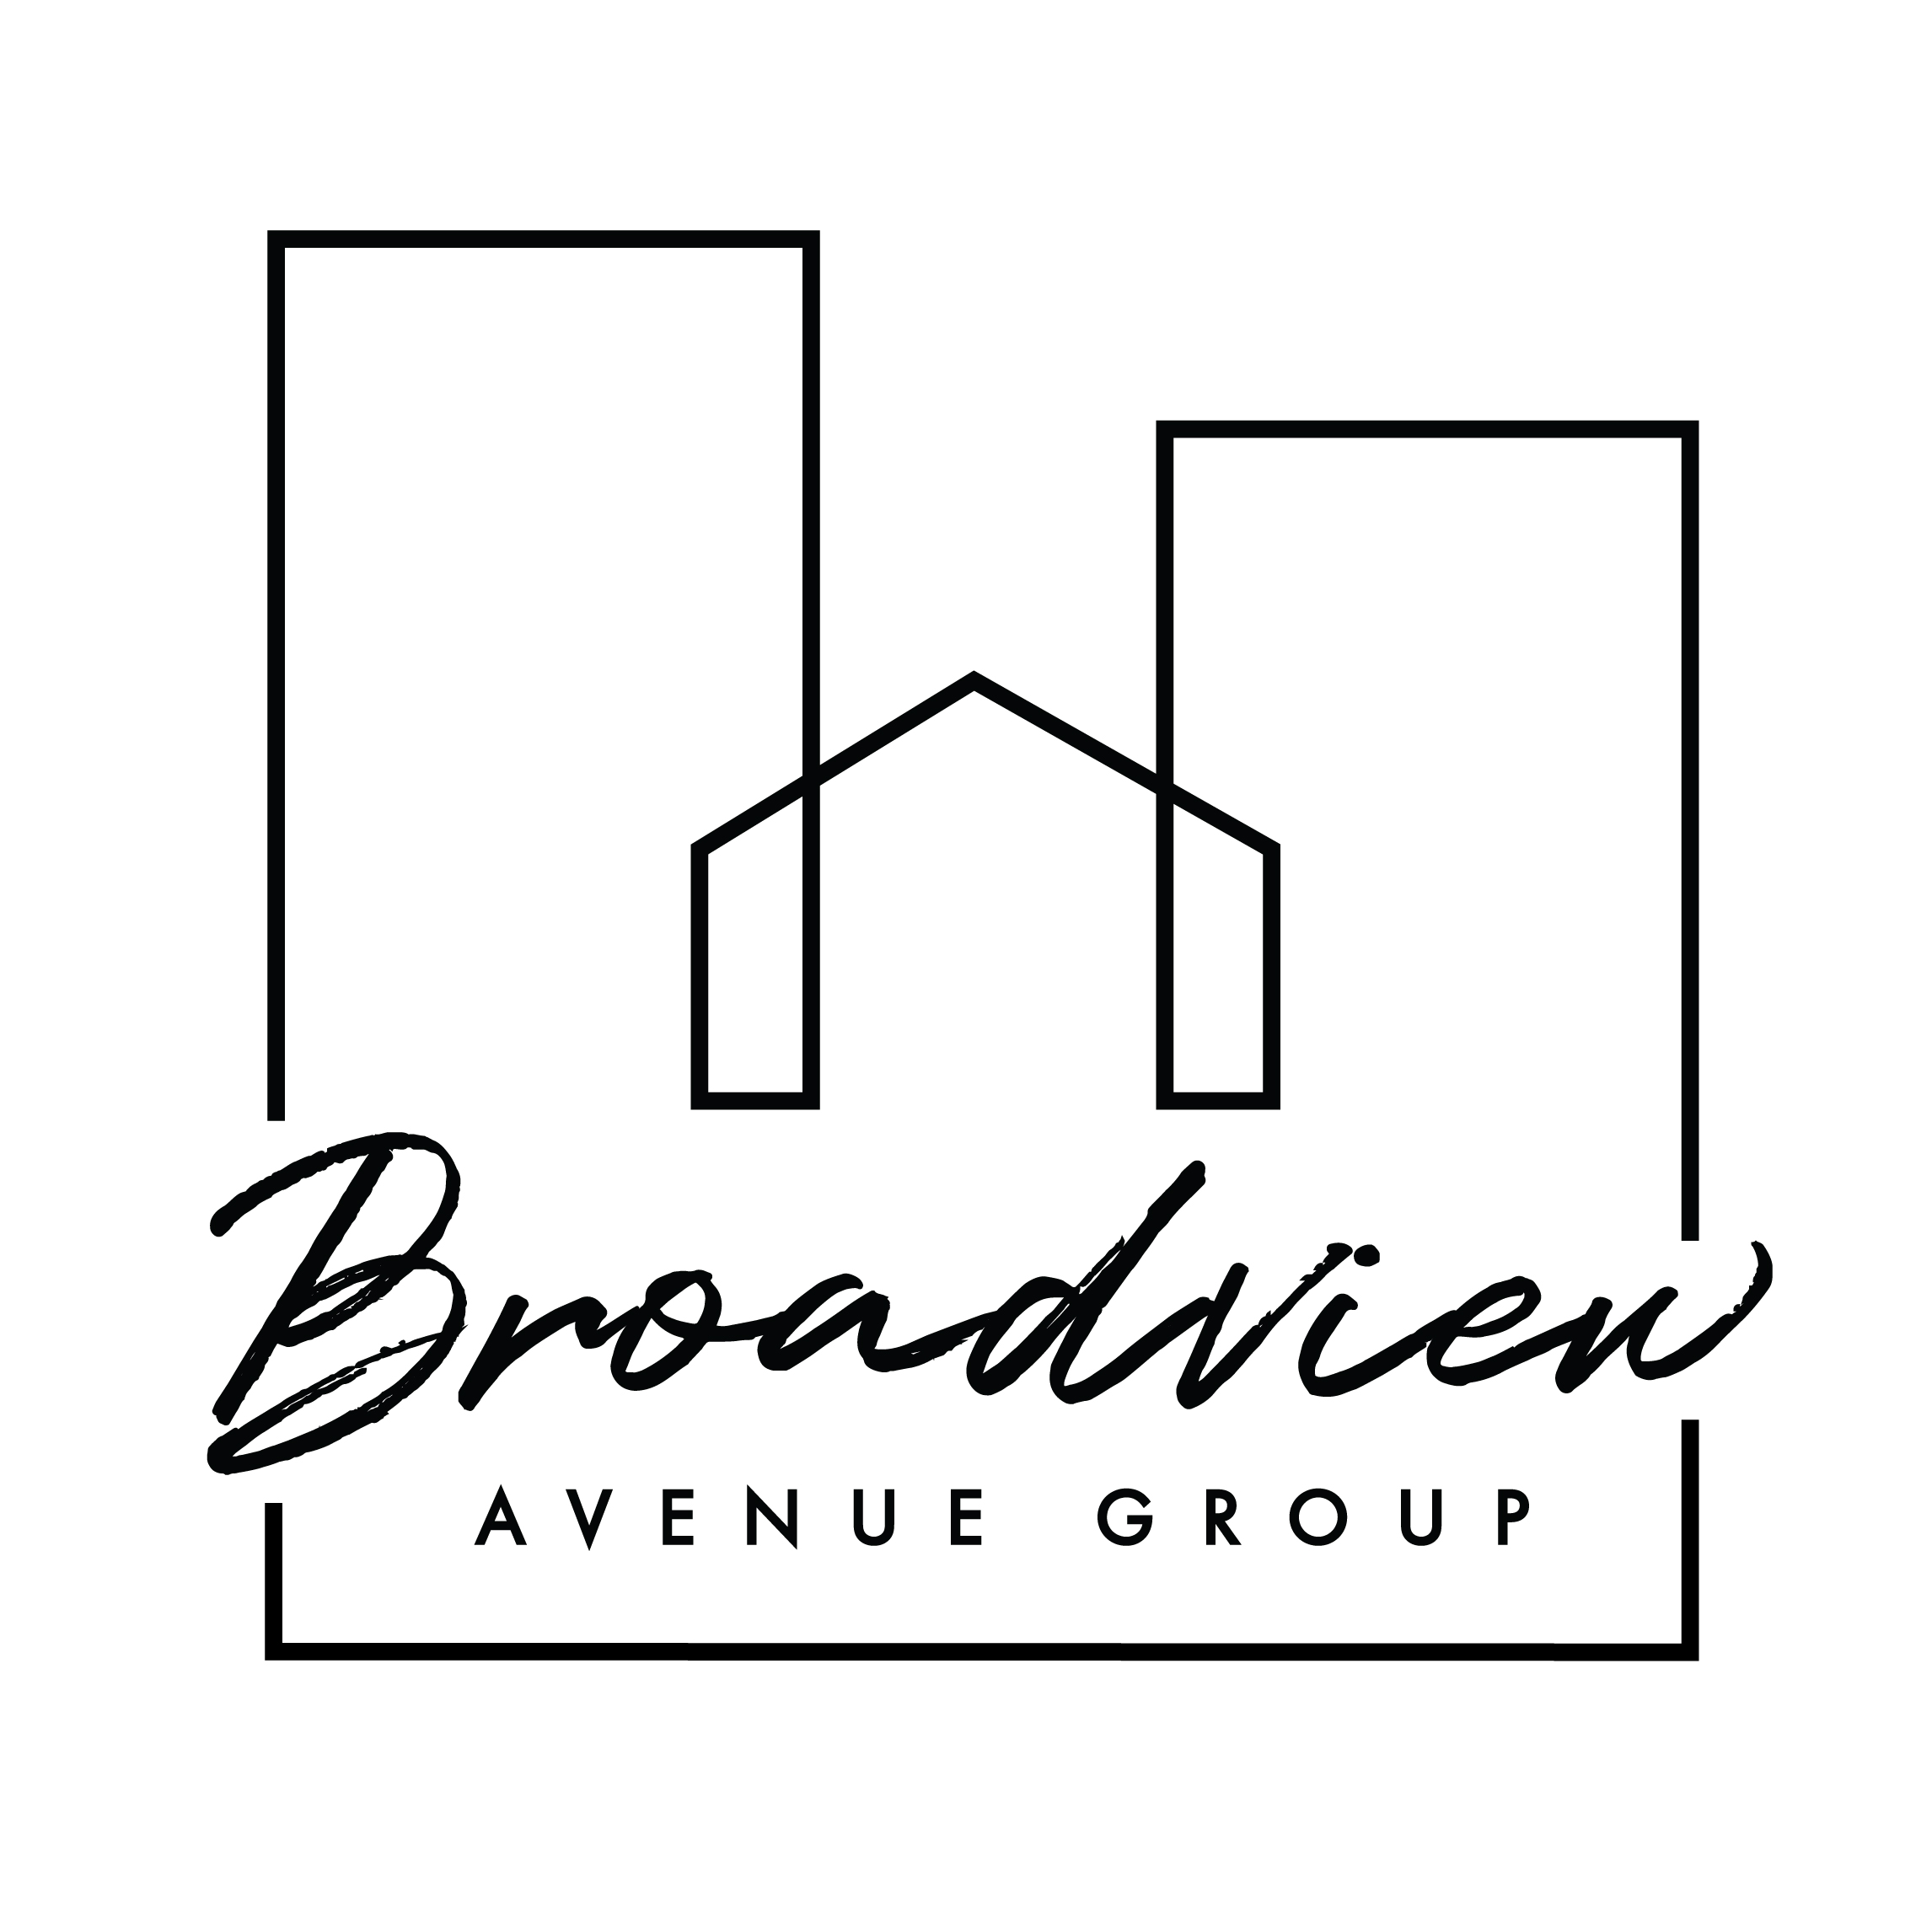 Broadview Avenue Group - Black - RGB.jpg